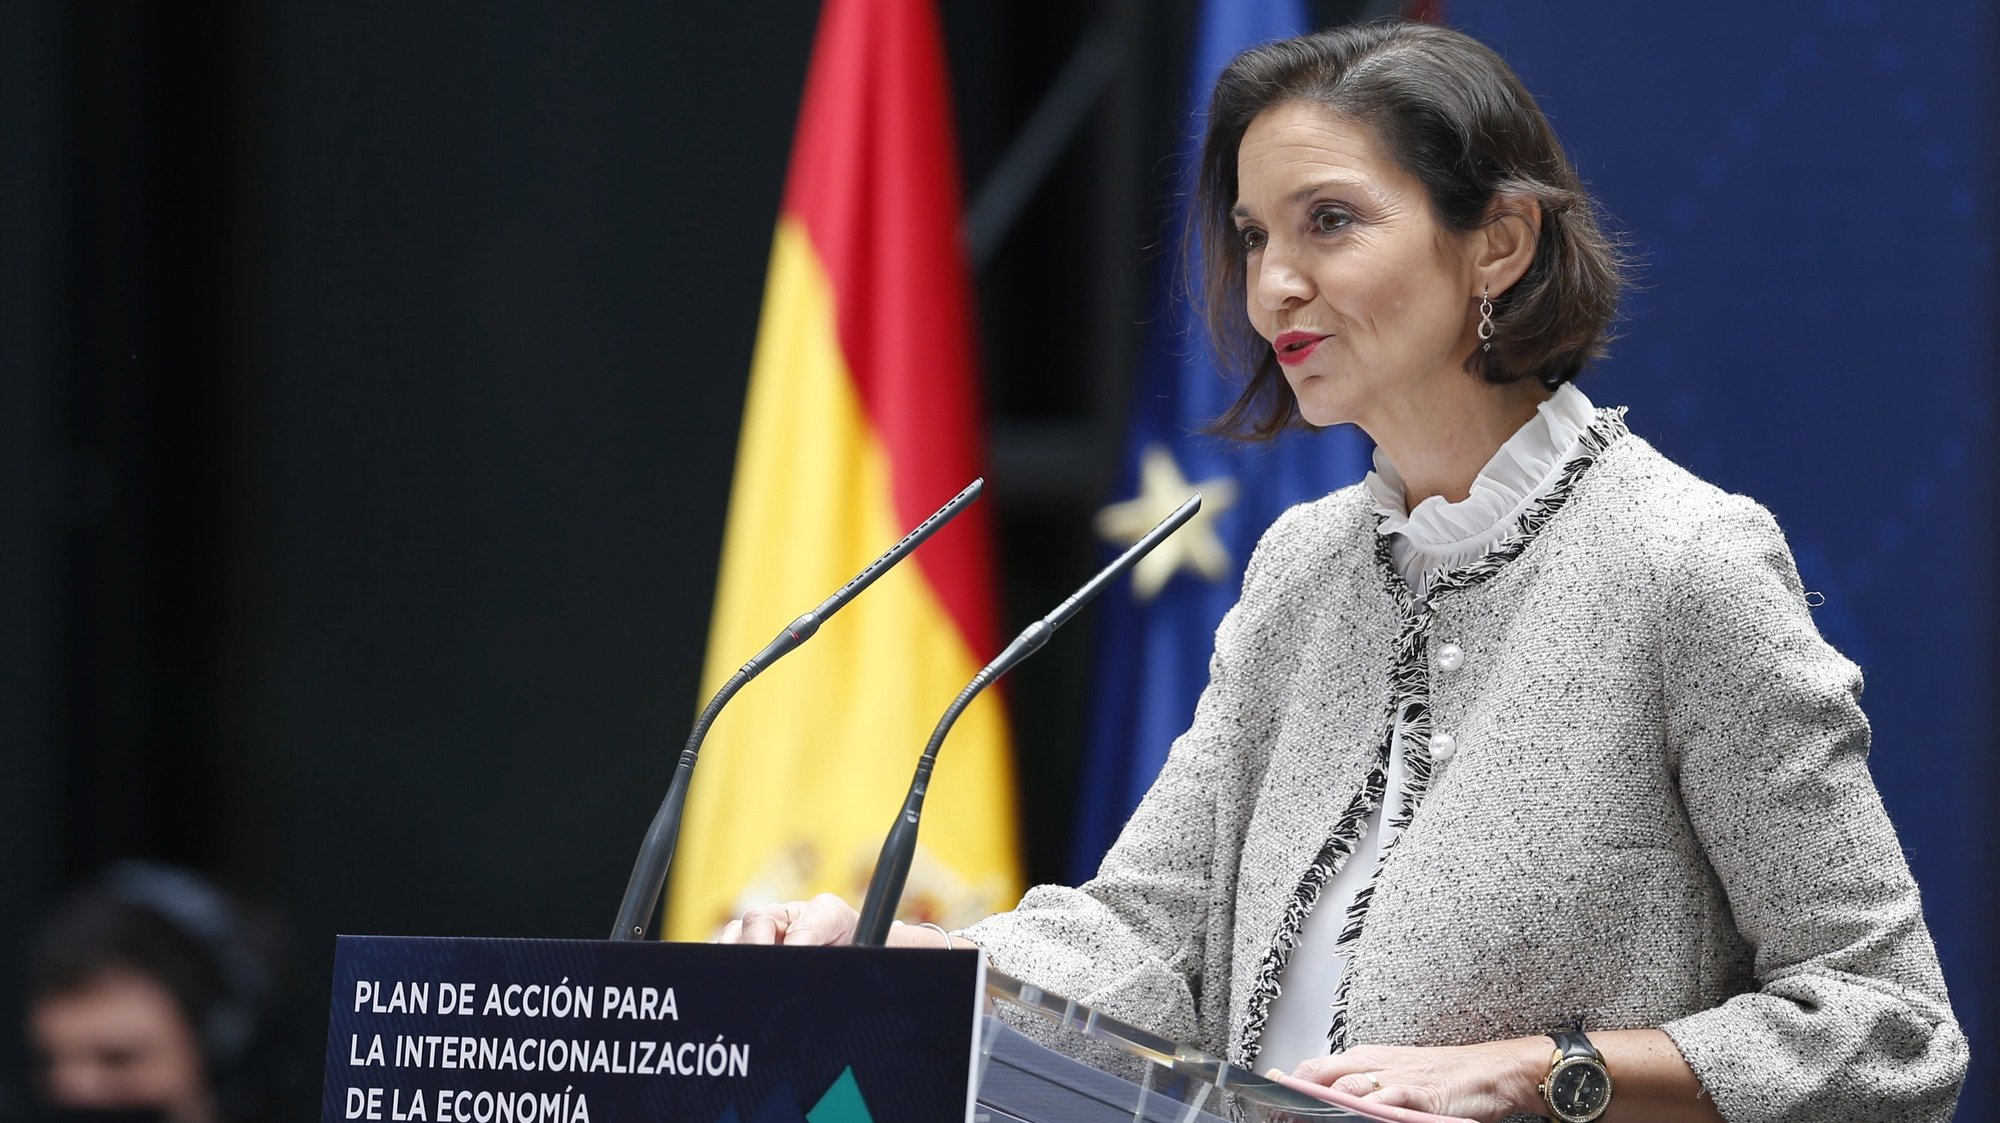 epa09228777 Spain's Industry, Commerce and Tourism Minister Reyes Maroto delivers a speech during the presentation of the Action Plan for the Internationalization of the Spanish Economy 2021-2022 at ICEX (Spanish Institute for Foreign Trade) headquarters in Madrid, central Spain, 26 May 2021. Spain will prioritize investment in Latin America in its new plan for the internationalization of the economy, endowed with more than 4.5 billion euros, seeking to promote the foreign sector as an engine of economic growth and a generator of employment. Spain places Latin America, and in particular Argentina, as a priority region for projects and investments.  EPA/Javier Lizon